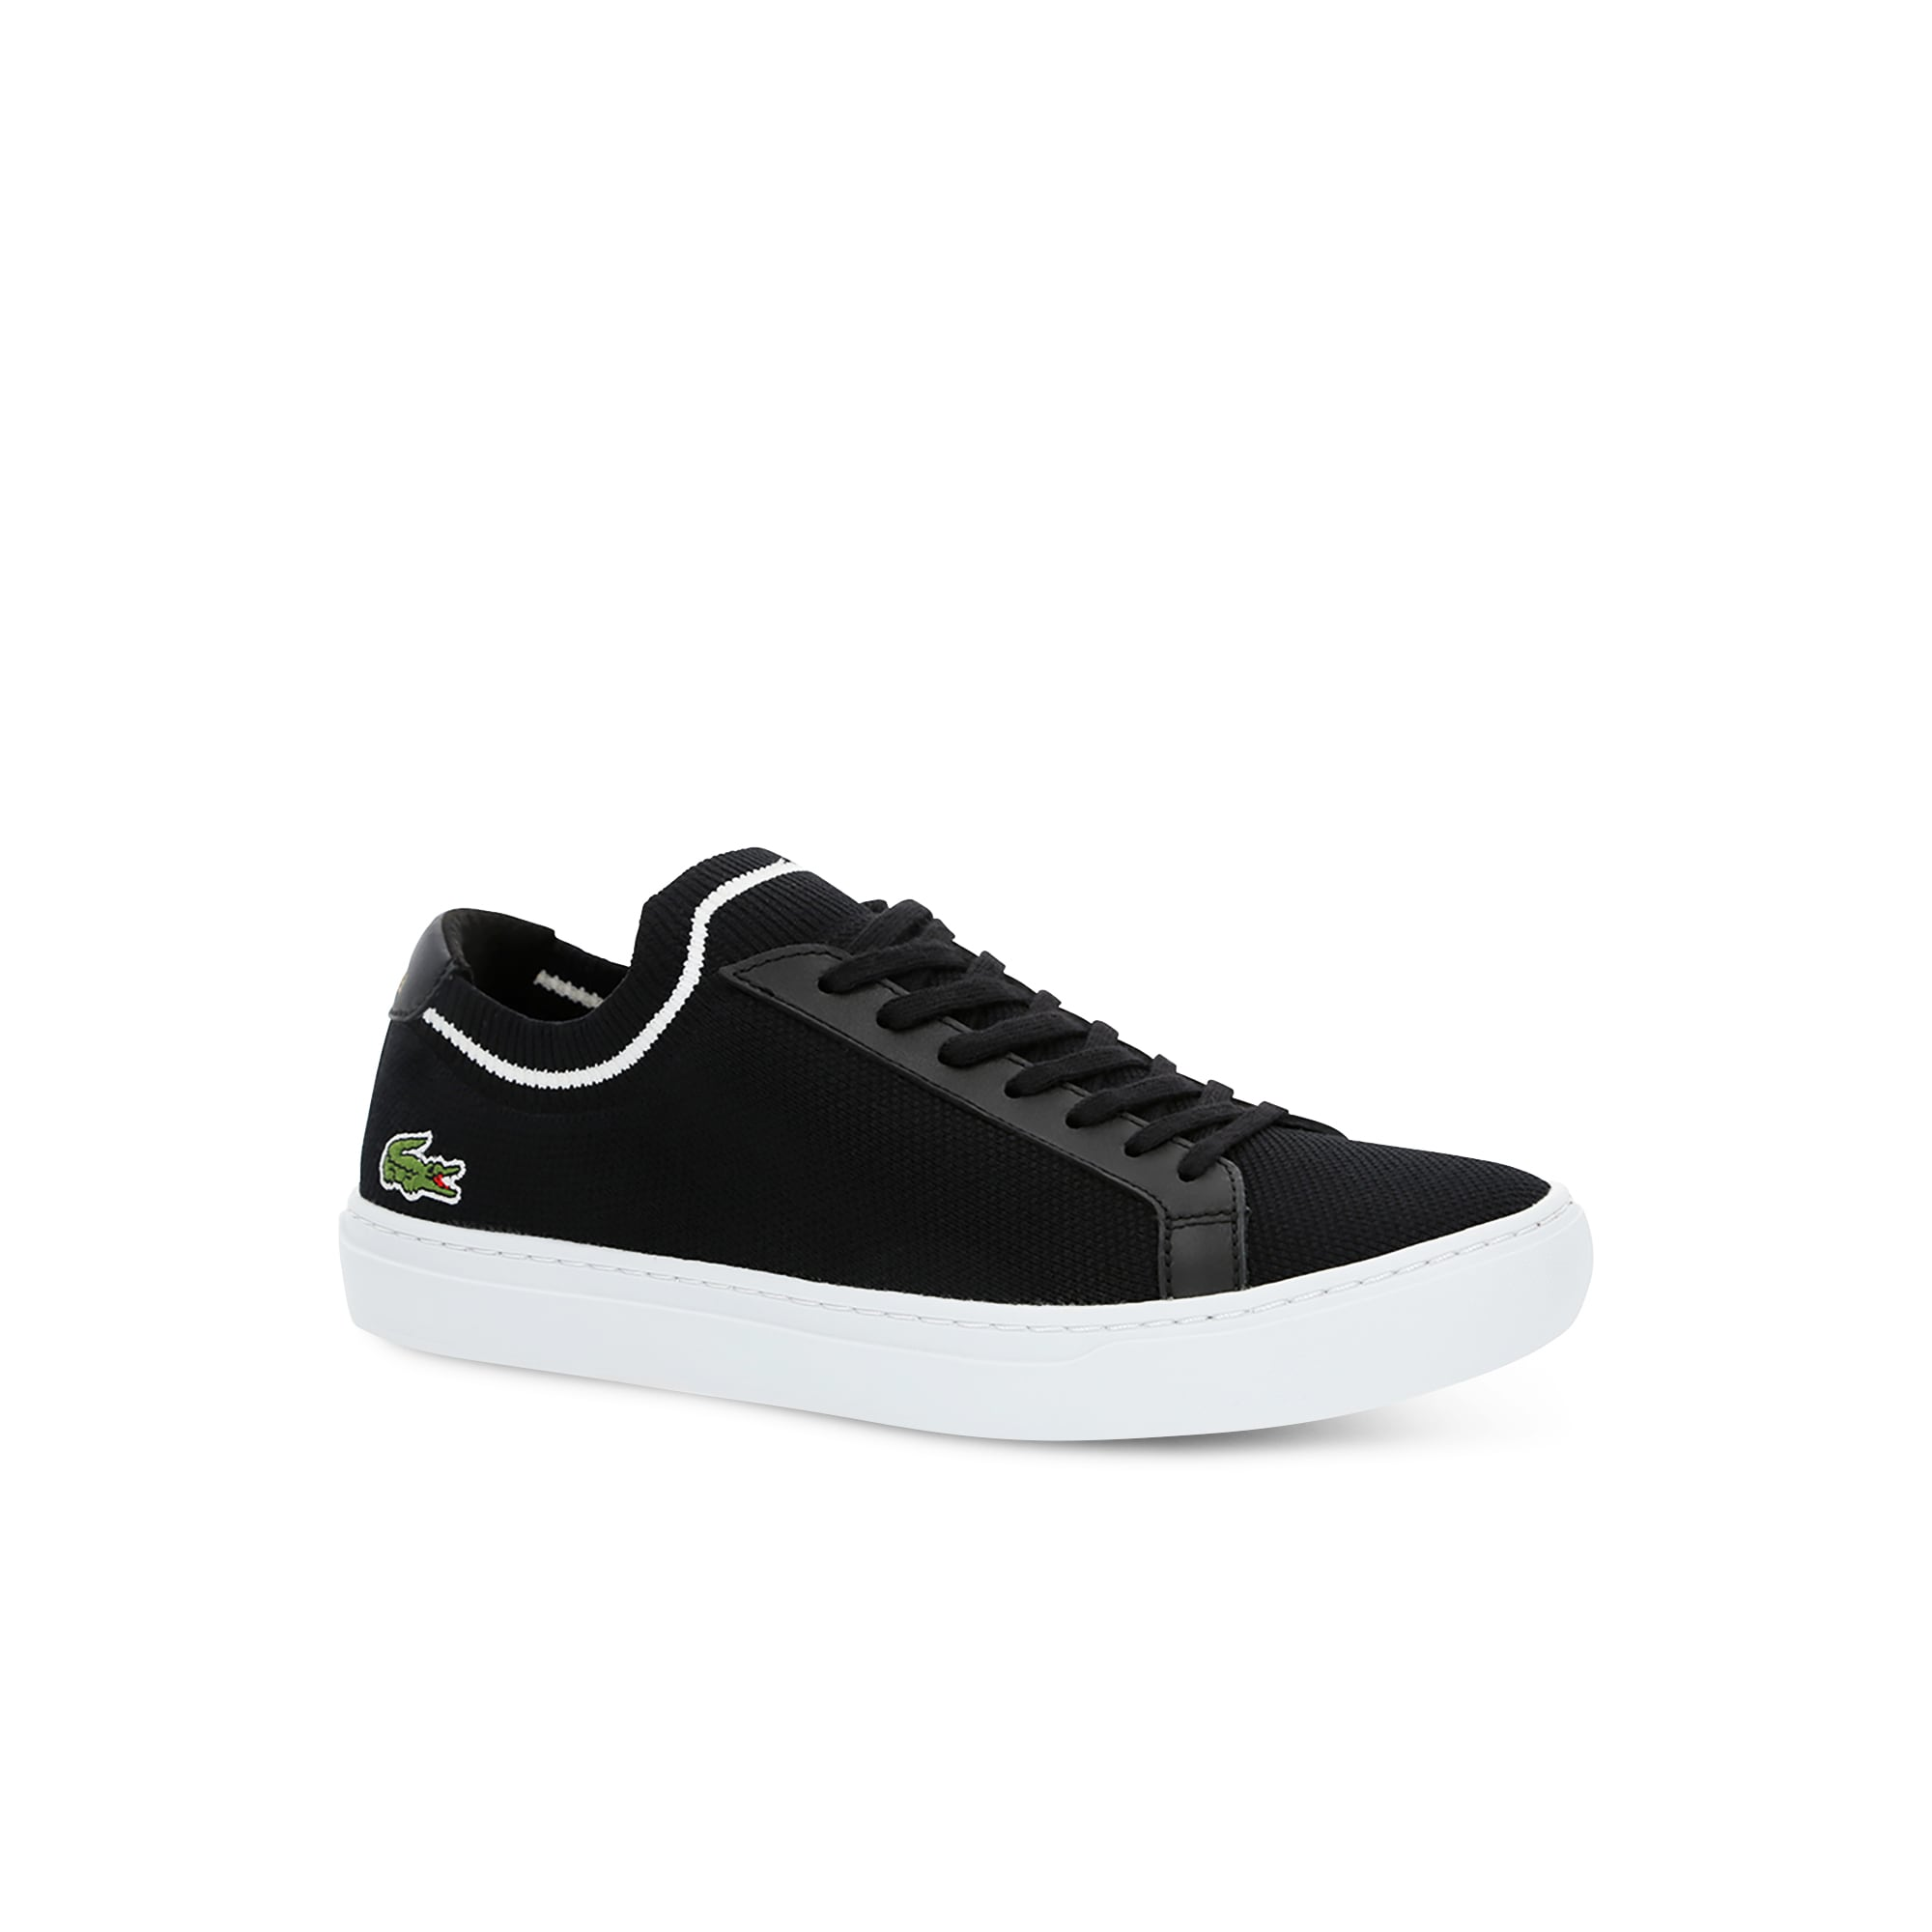 2c3ef9606c3cd Men s La Piquée Textile Trainers. £95.00. + 3 colors